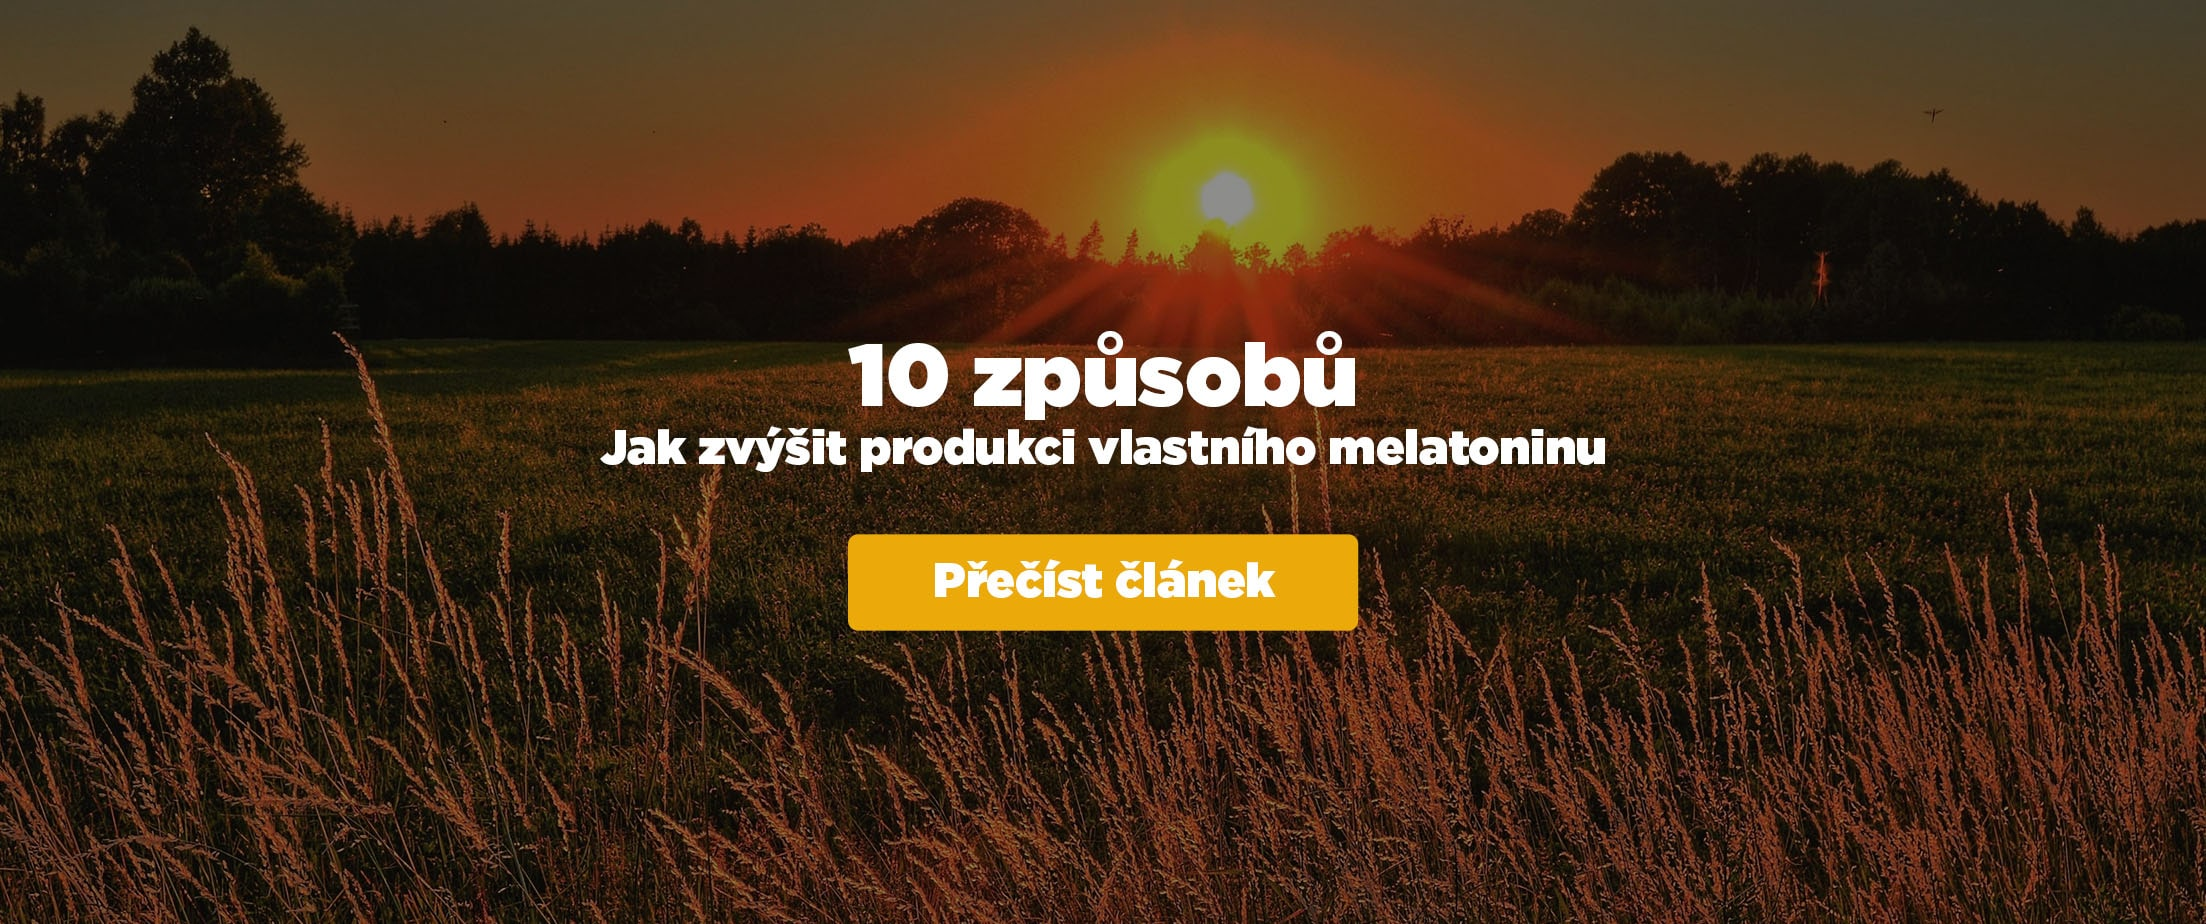 10 zpusobu melatonin